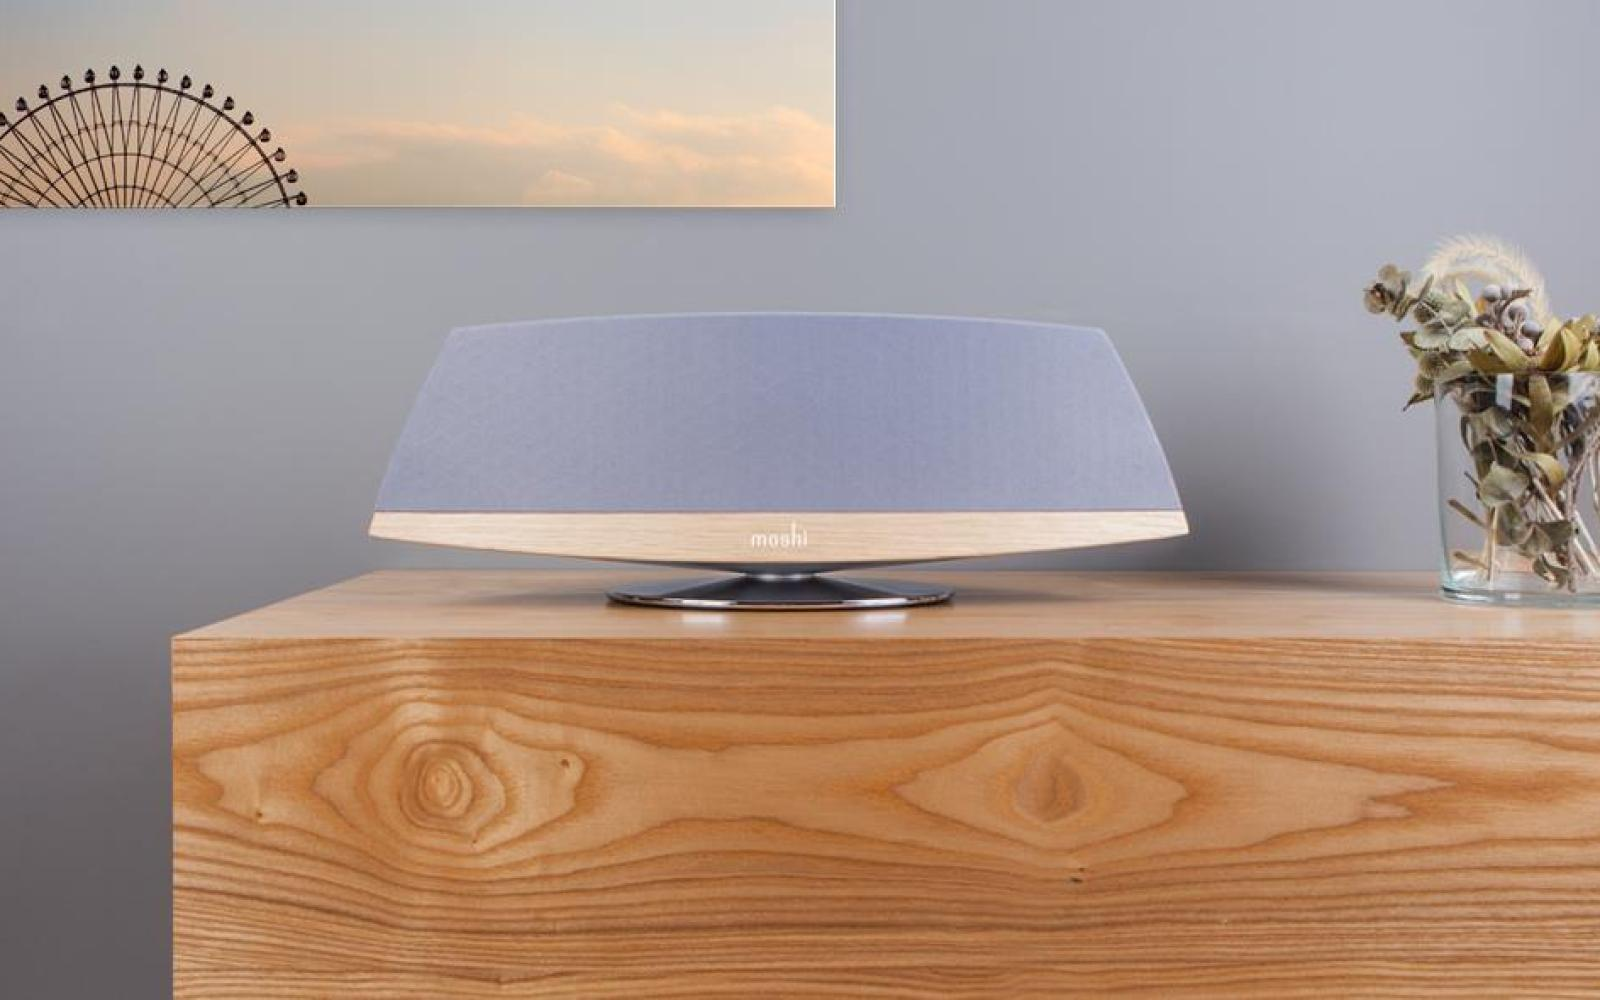 CES 2015: Moshi launches chic new AirPlay speaker Spatia